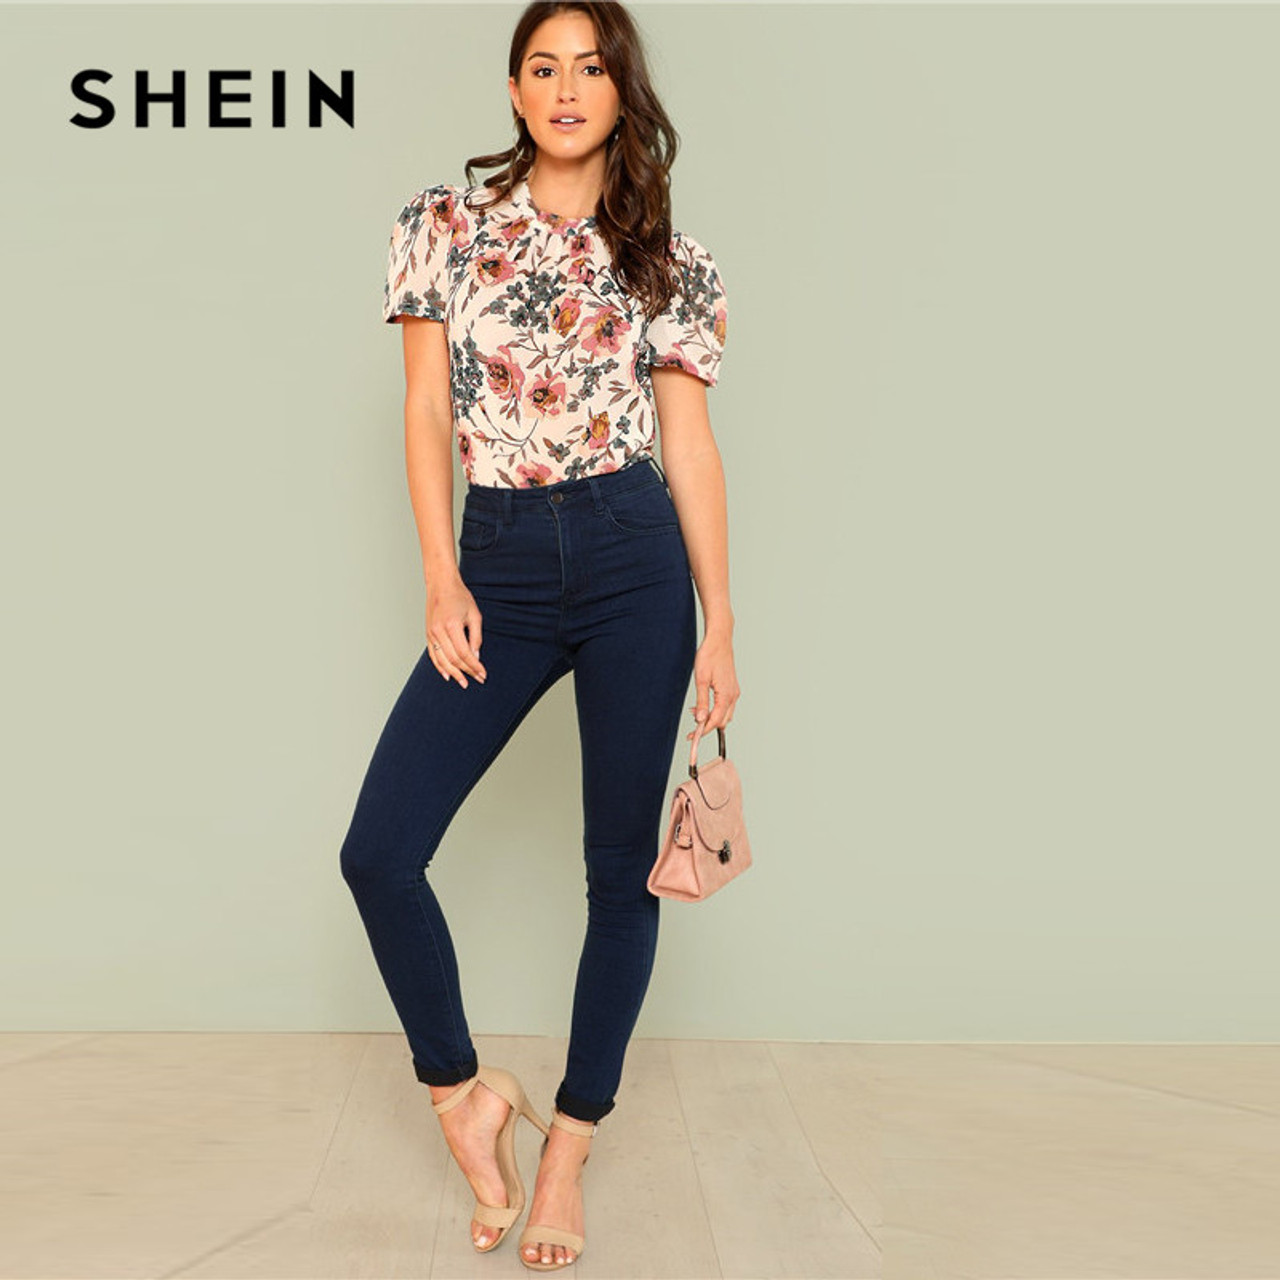 1c2c5bae32 ... SHEIN Prairie Chic Boho Multicolor Floral Print Gathered Neck Puff  Sleeve Womens Tops and Blouses for ...